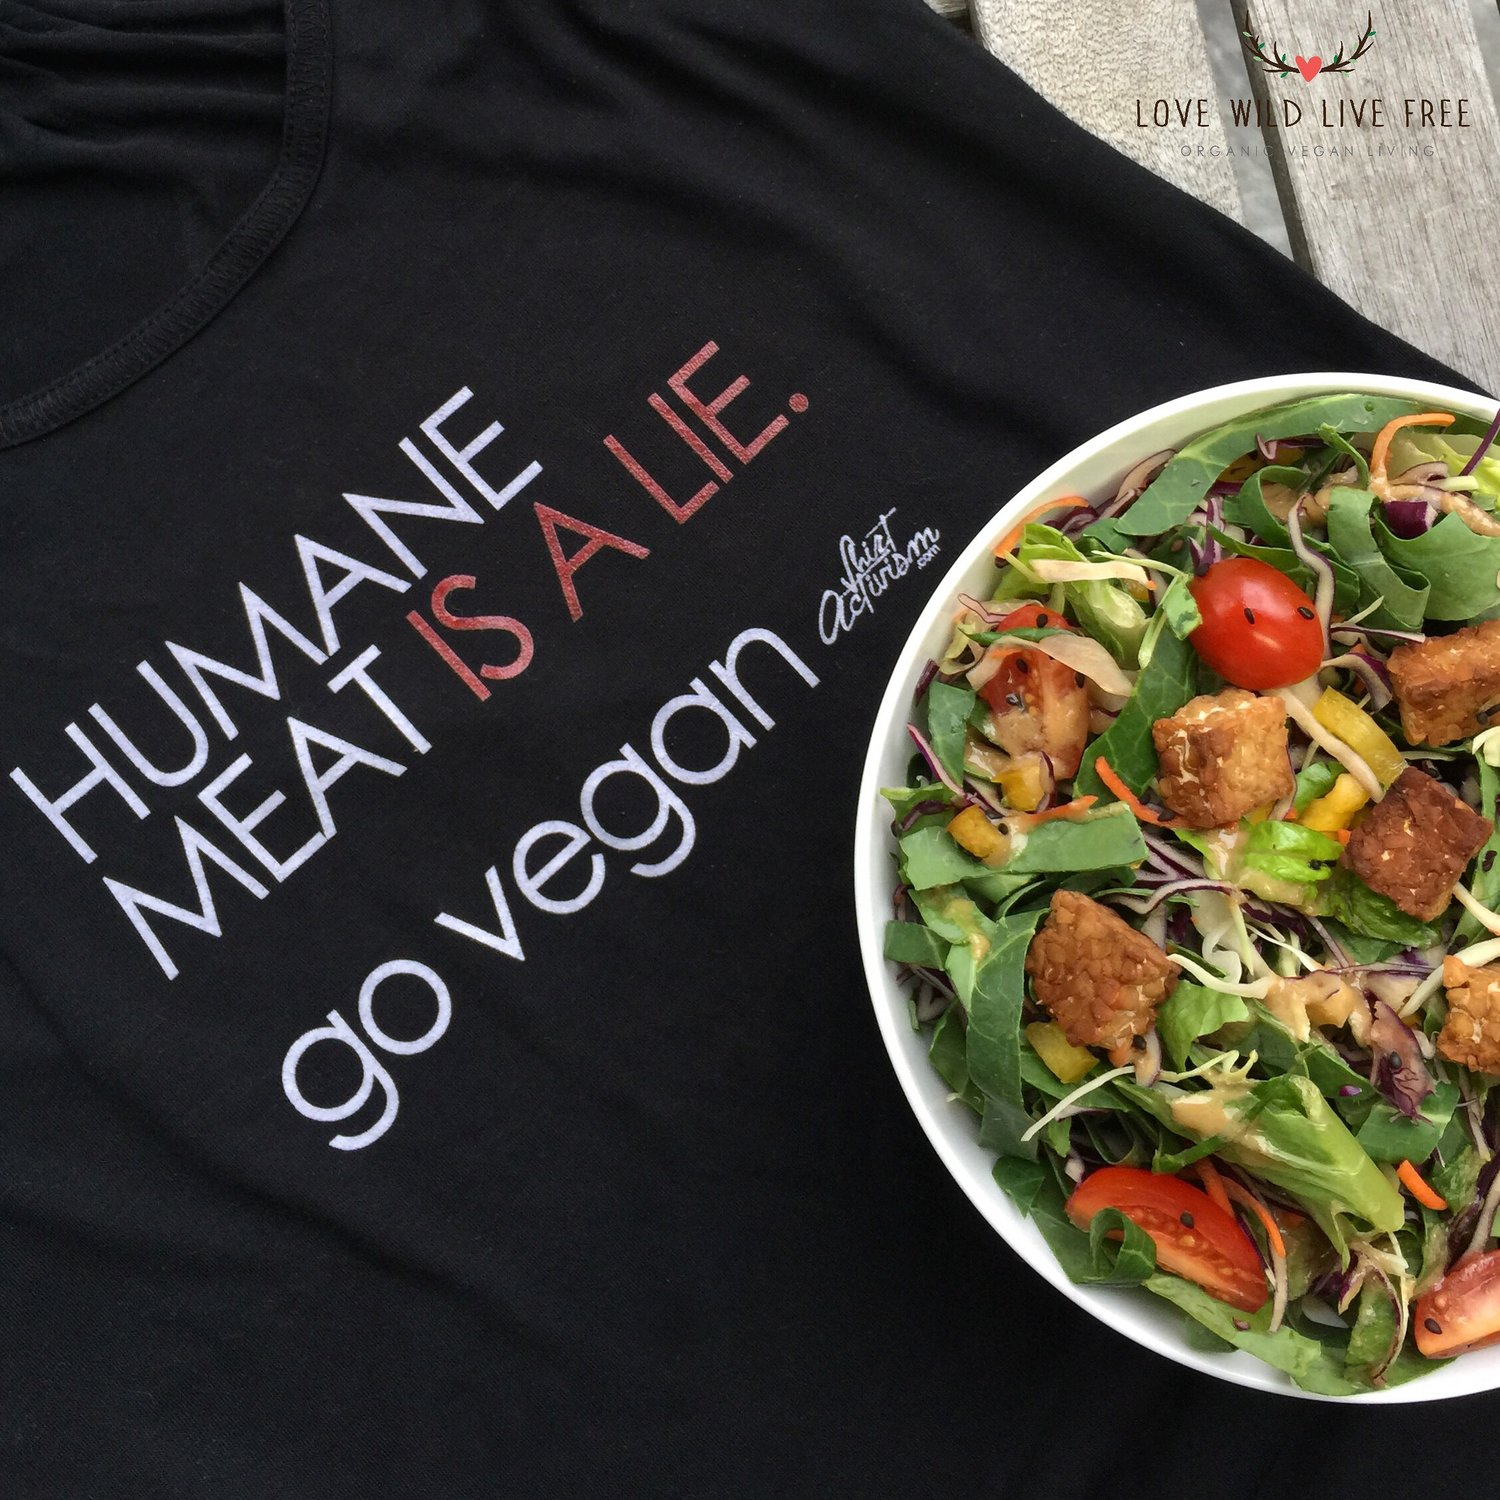 7fb11fd4f5bfc Shirt Activism  an Interview with Anne-Marie Campbell AKA the Meat Free  Athlete + PROMO CODE  Cruelty-Free Holiday Gifts Series  — LoveWildLiveFree